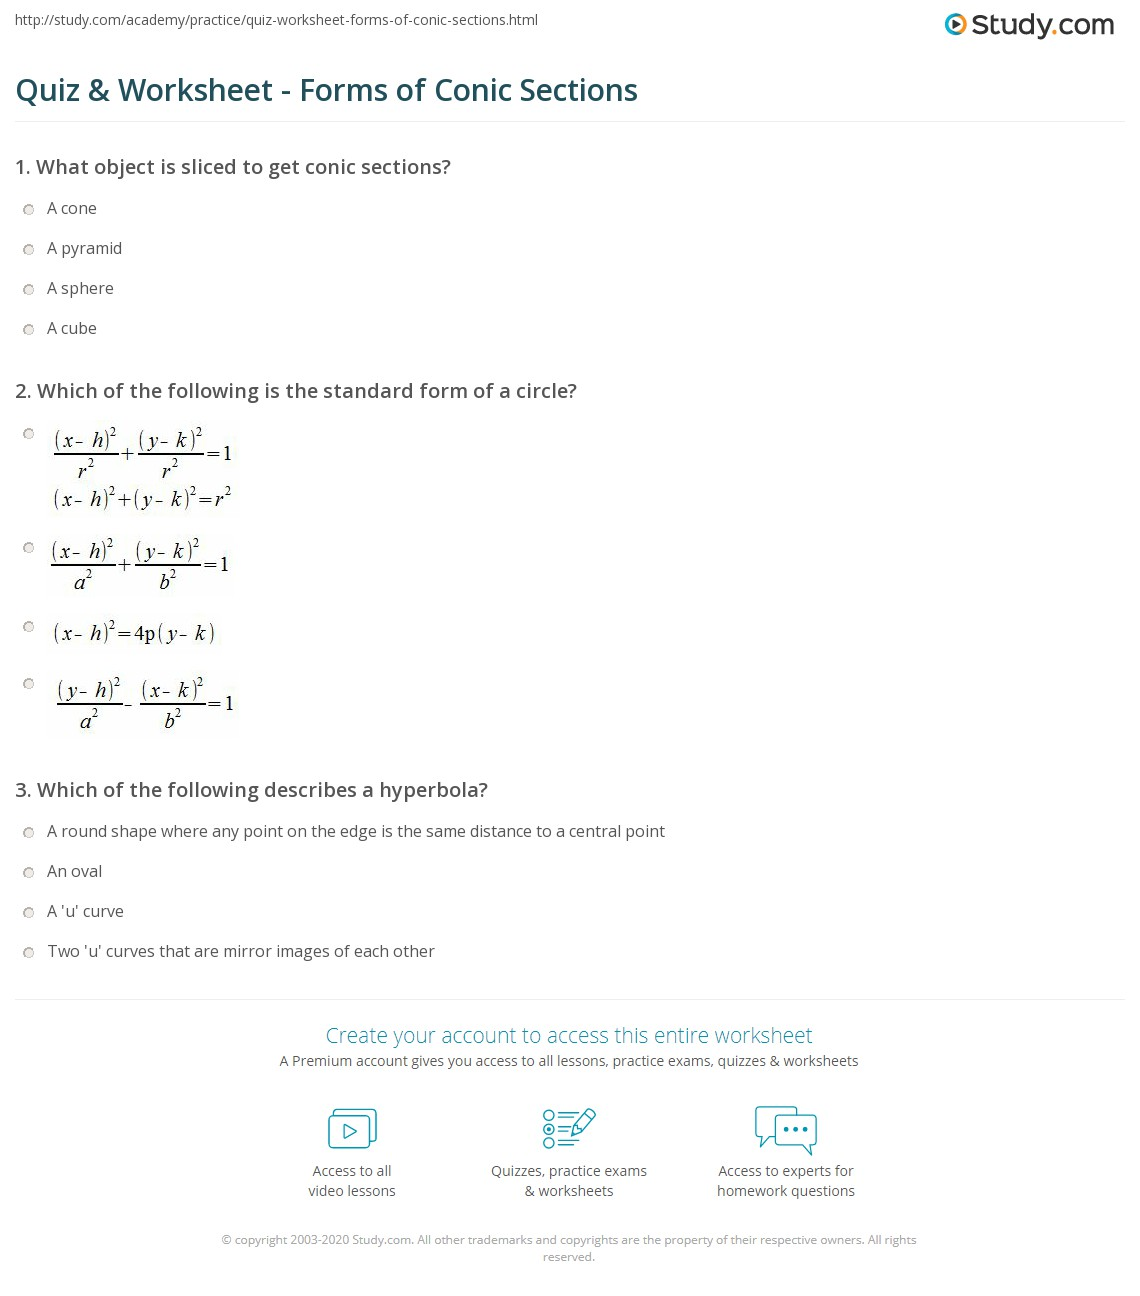 Quiz worksheet forms of conic sections study which of the following is the standard form of a circle falaconquin